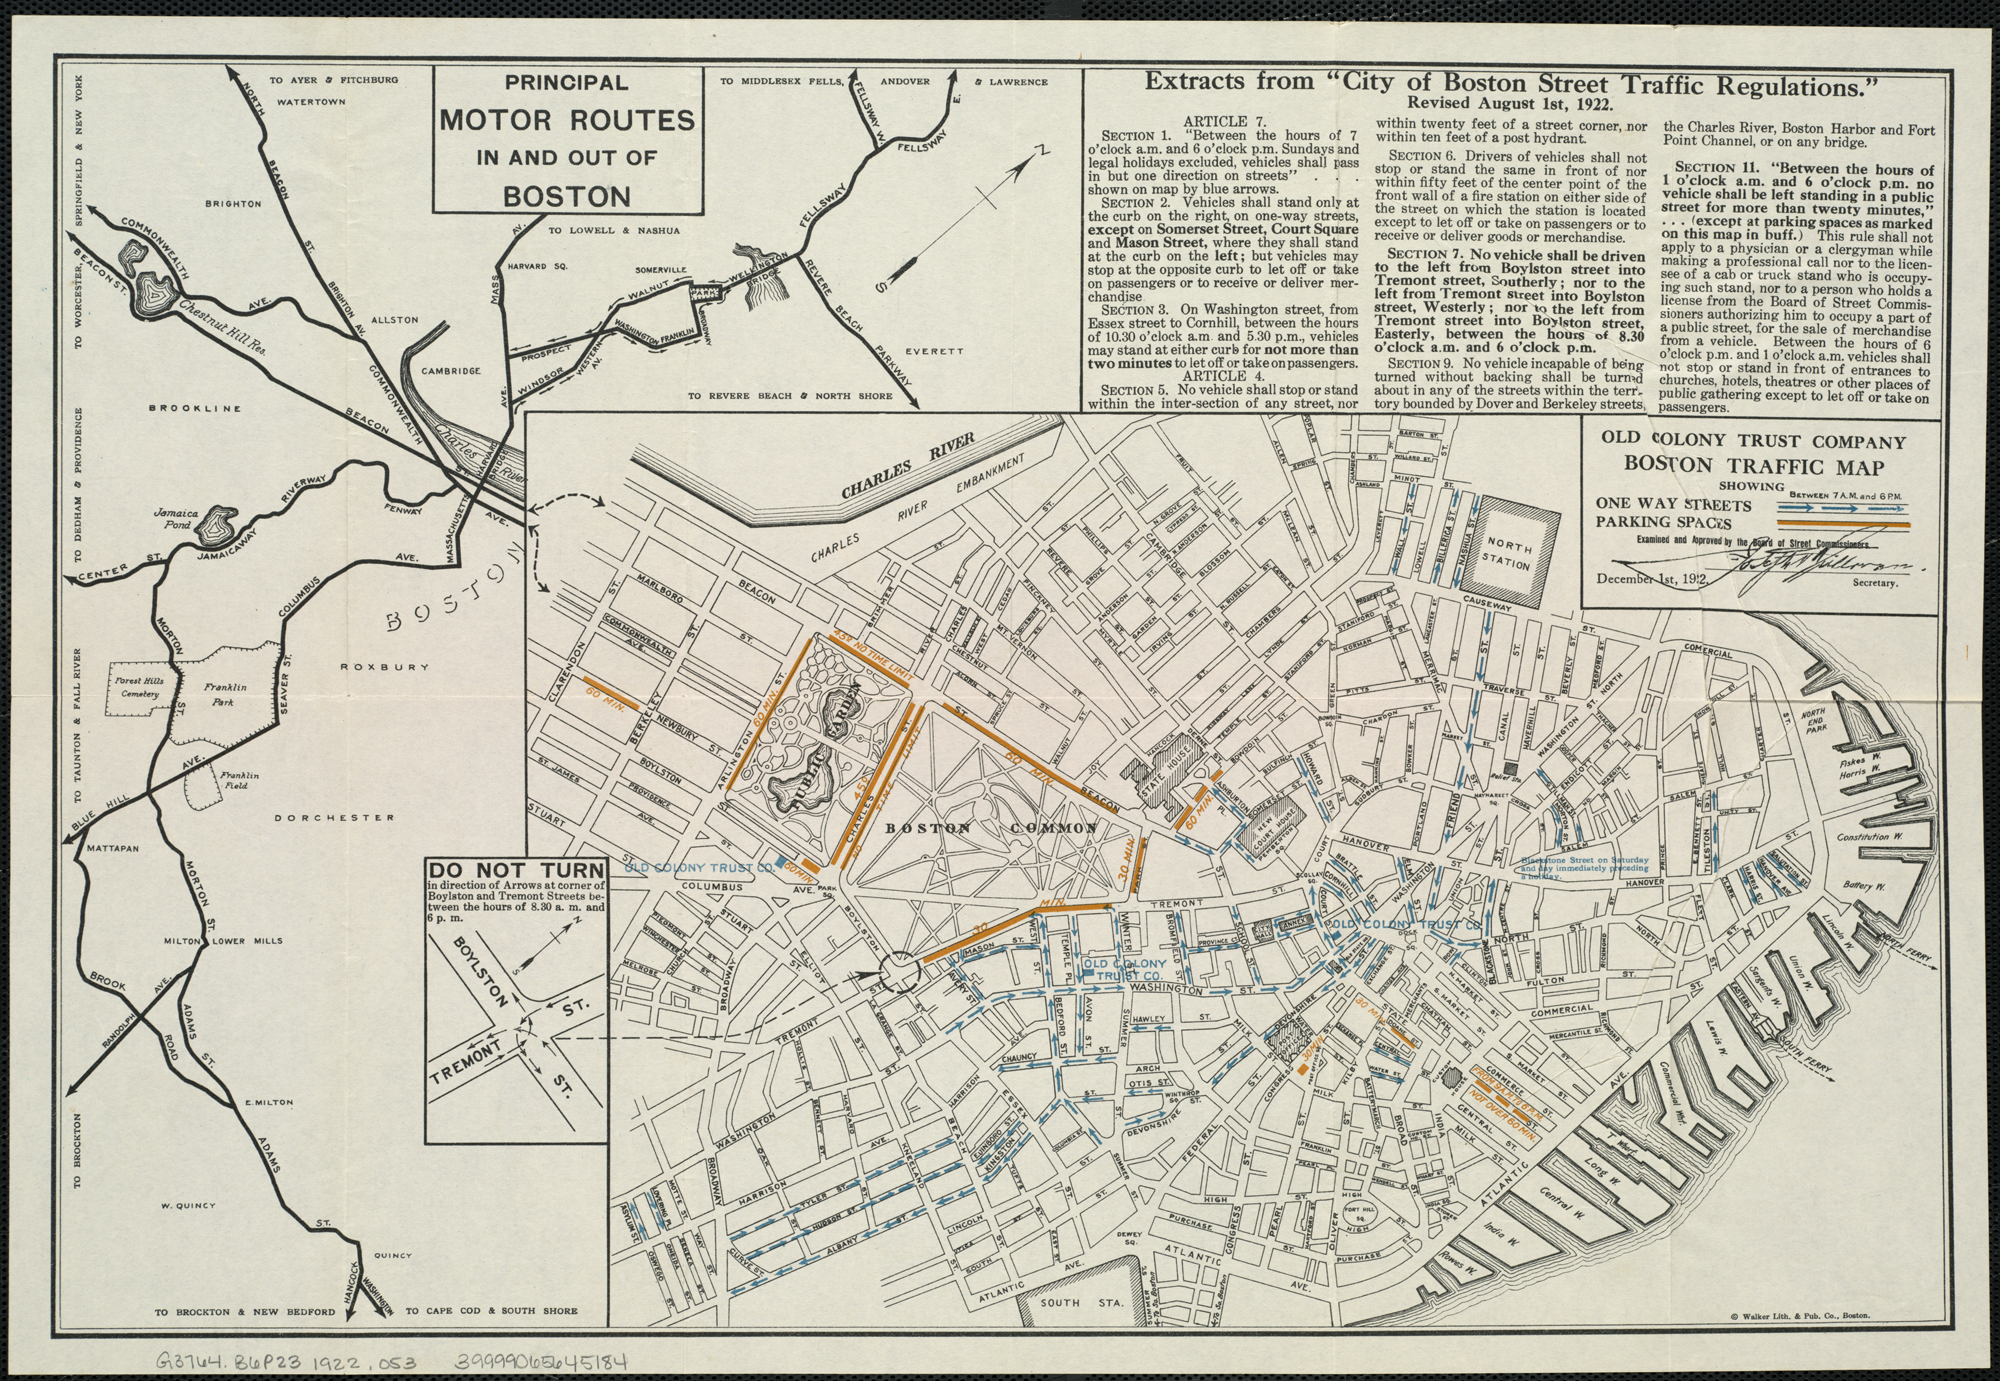 Boston Traffic Map File:Boston traffic map showing one way streets and parking spaces  Boston Traffic Map